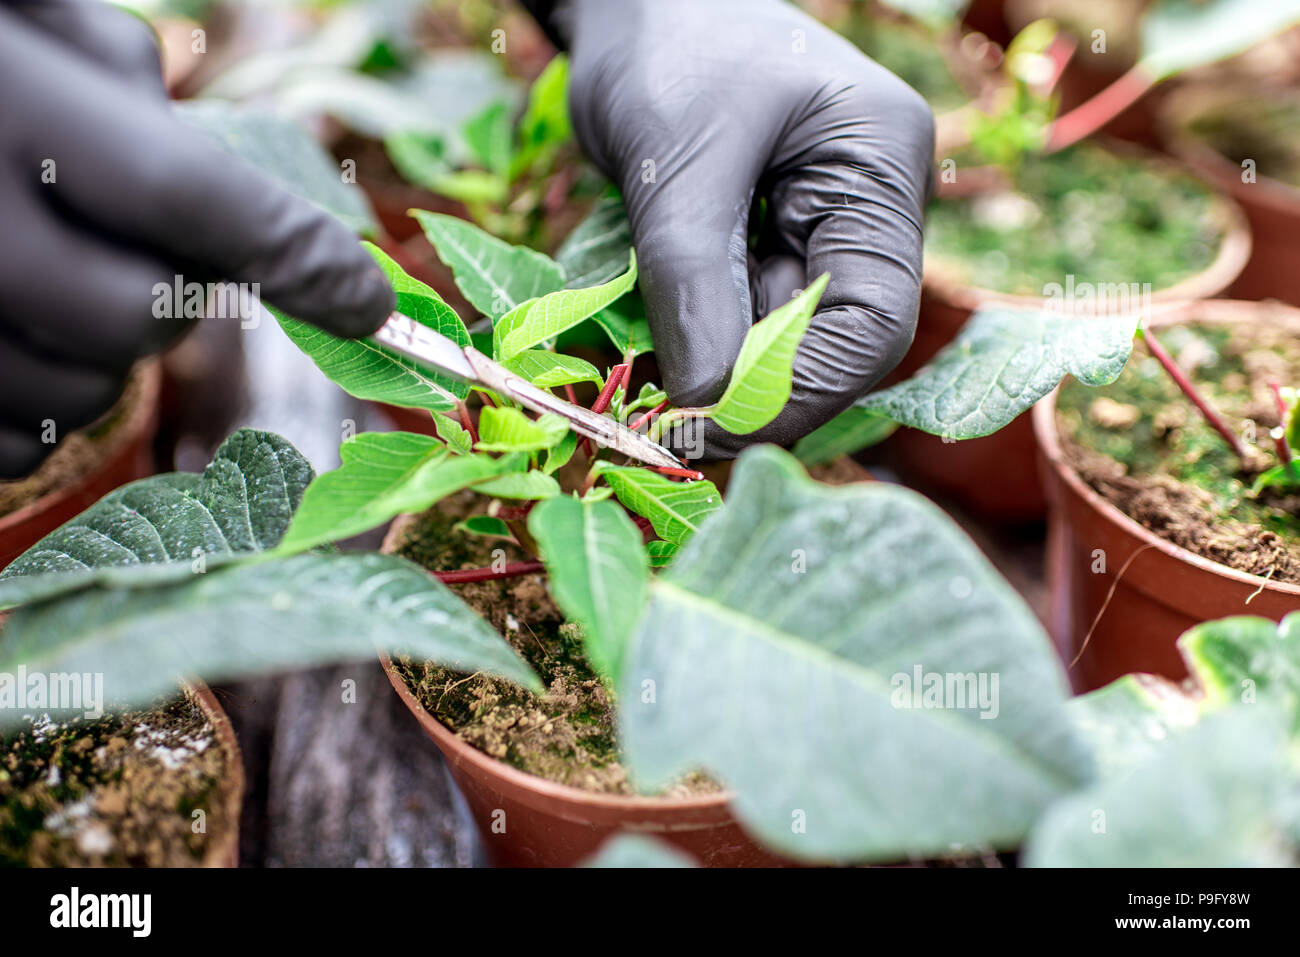 Cutting plants at the plantation - Stock Image